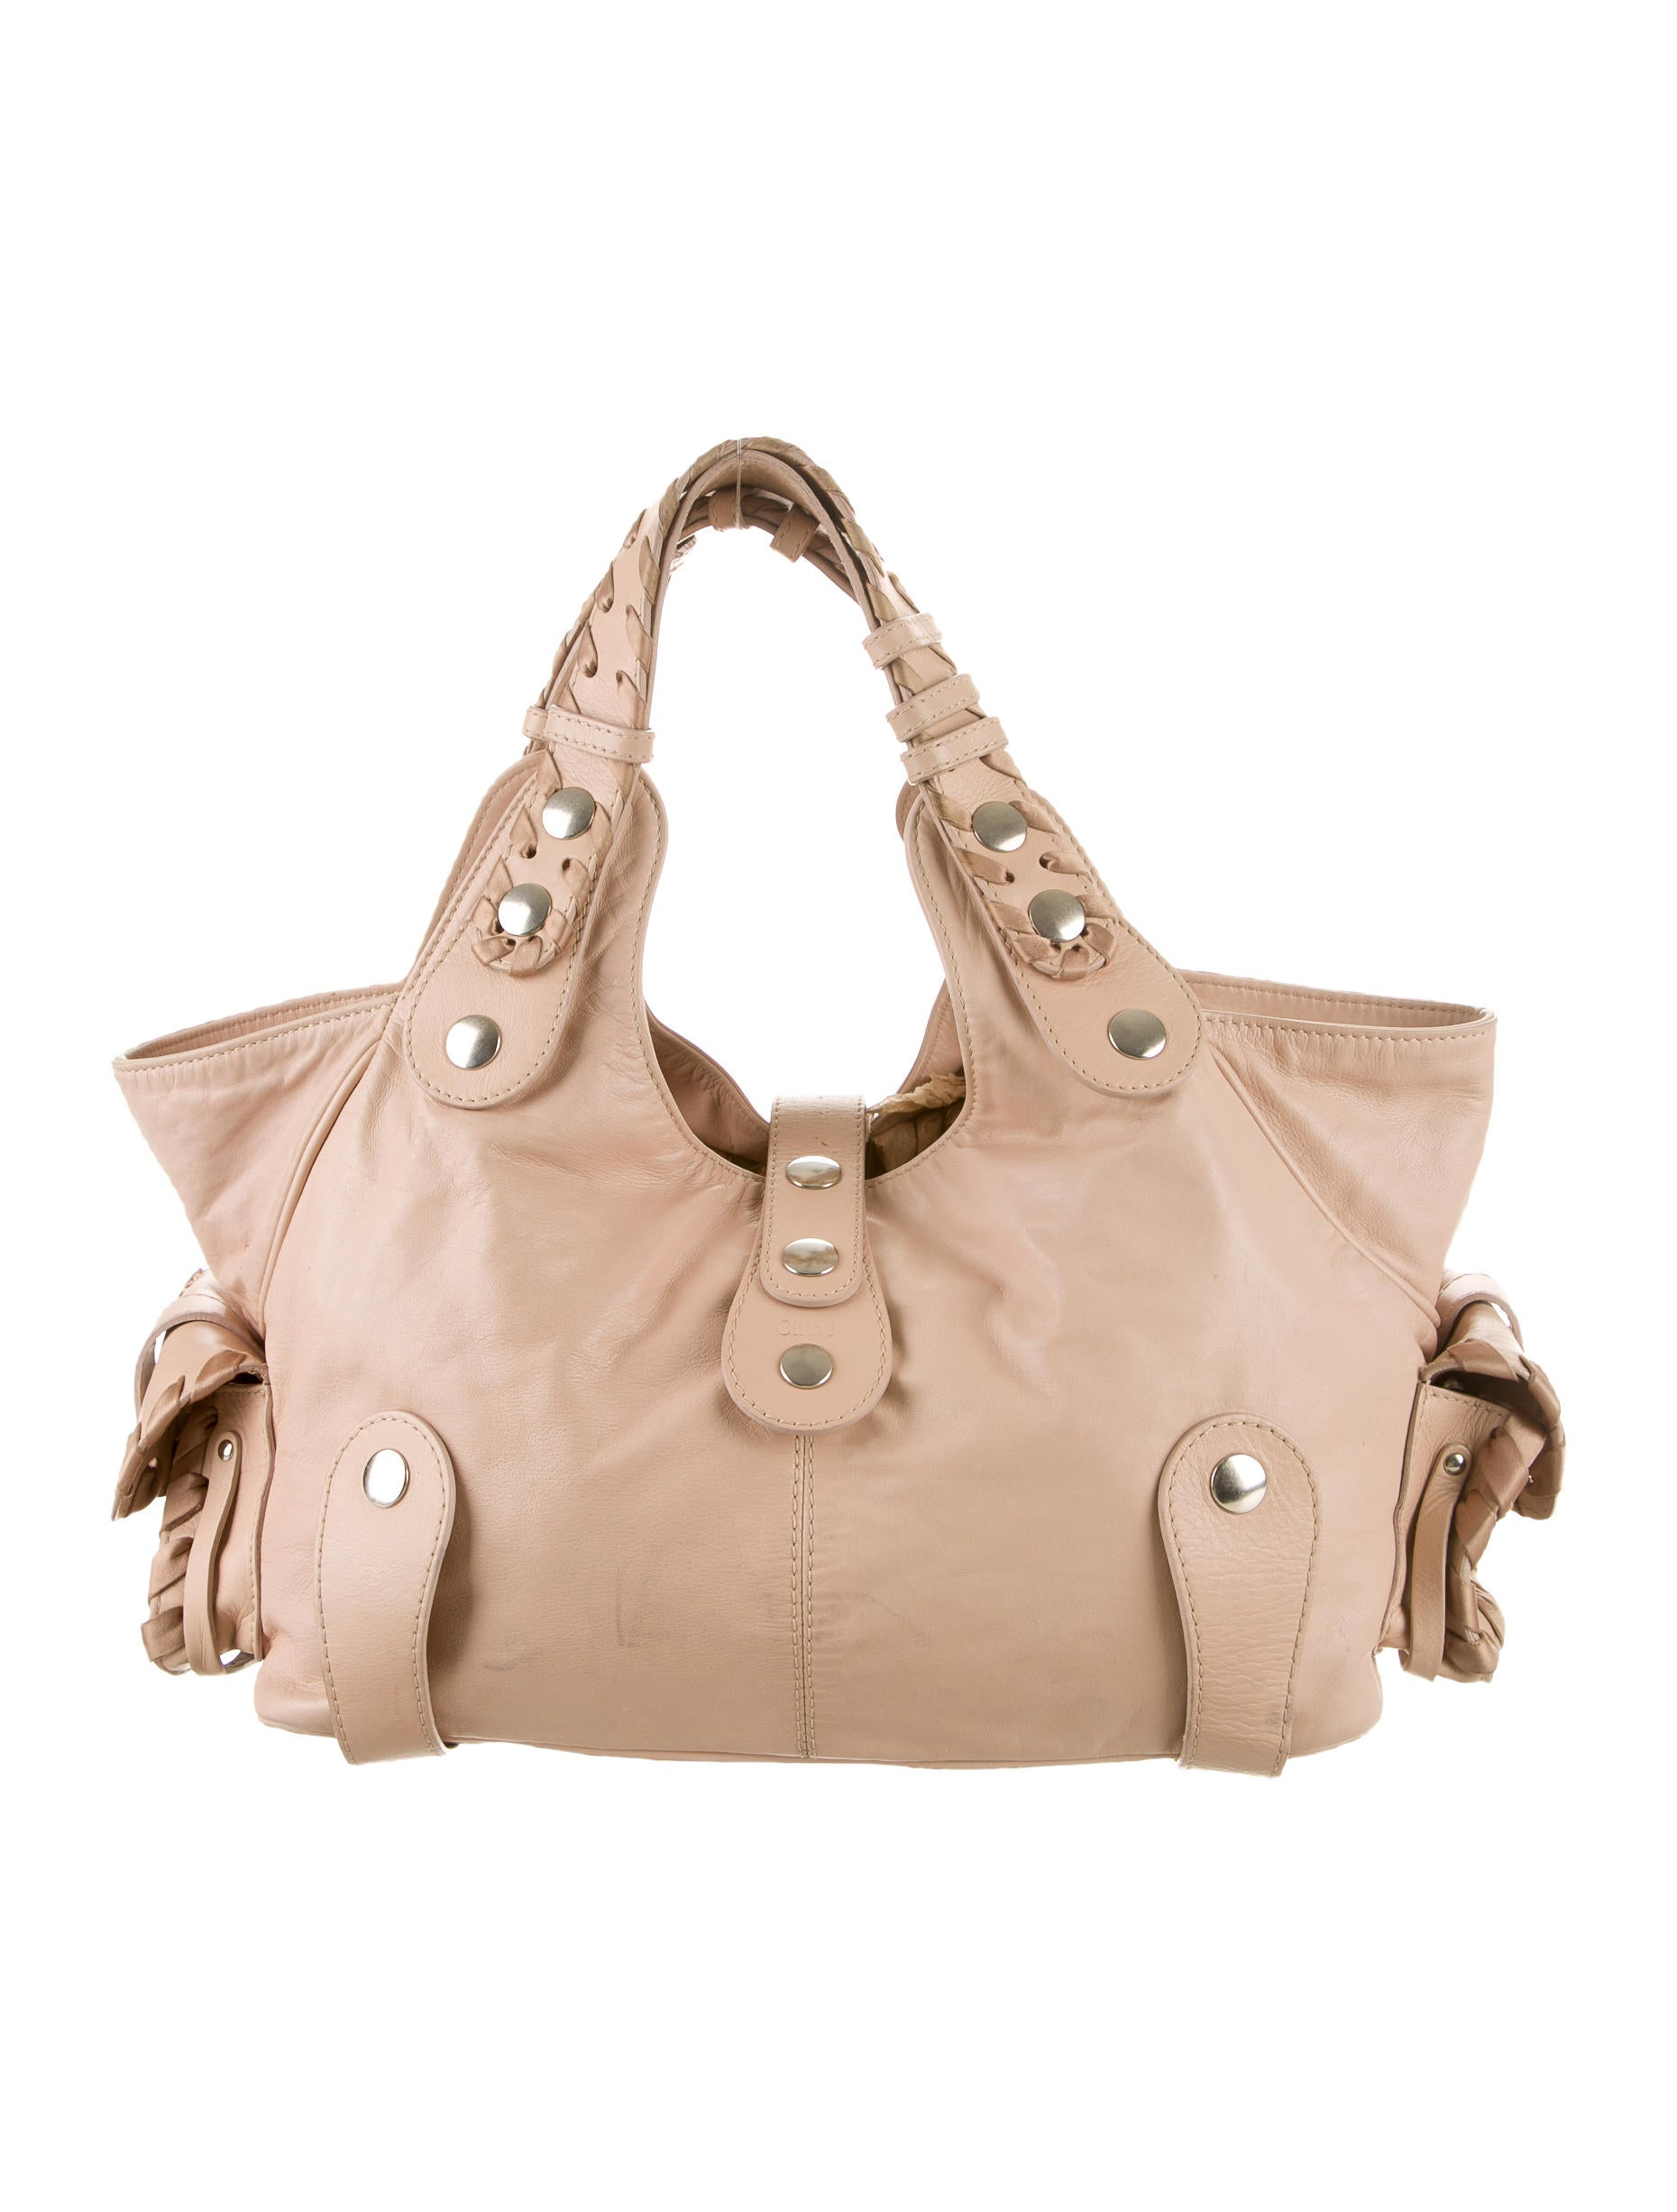 Chlo�� Silverado Bag - Handbags - CHL33881 | The RealReal